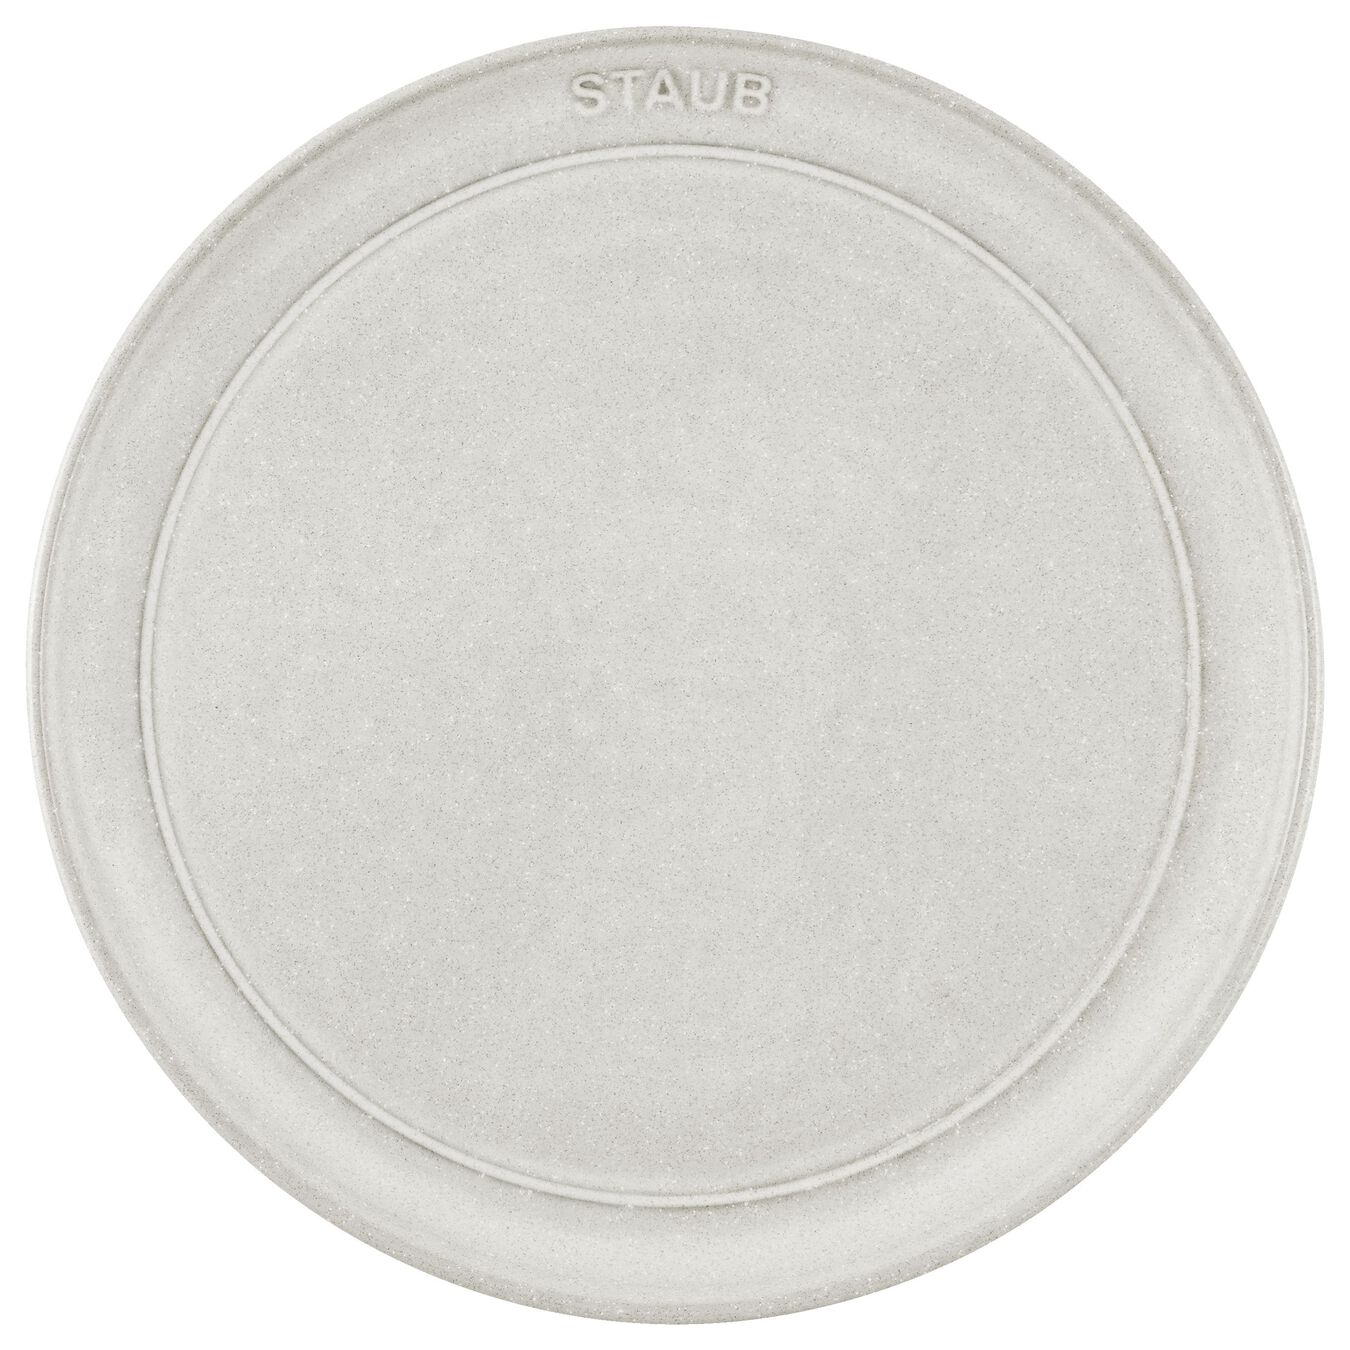 22 cm Ceramic round Assiette flat, White Truffle - Visual Imperfections,,large 2